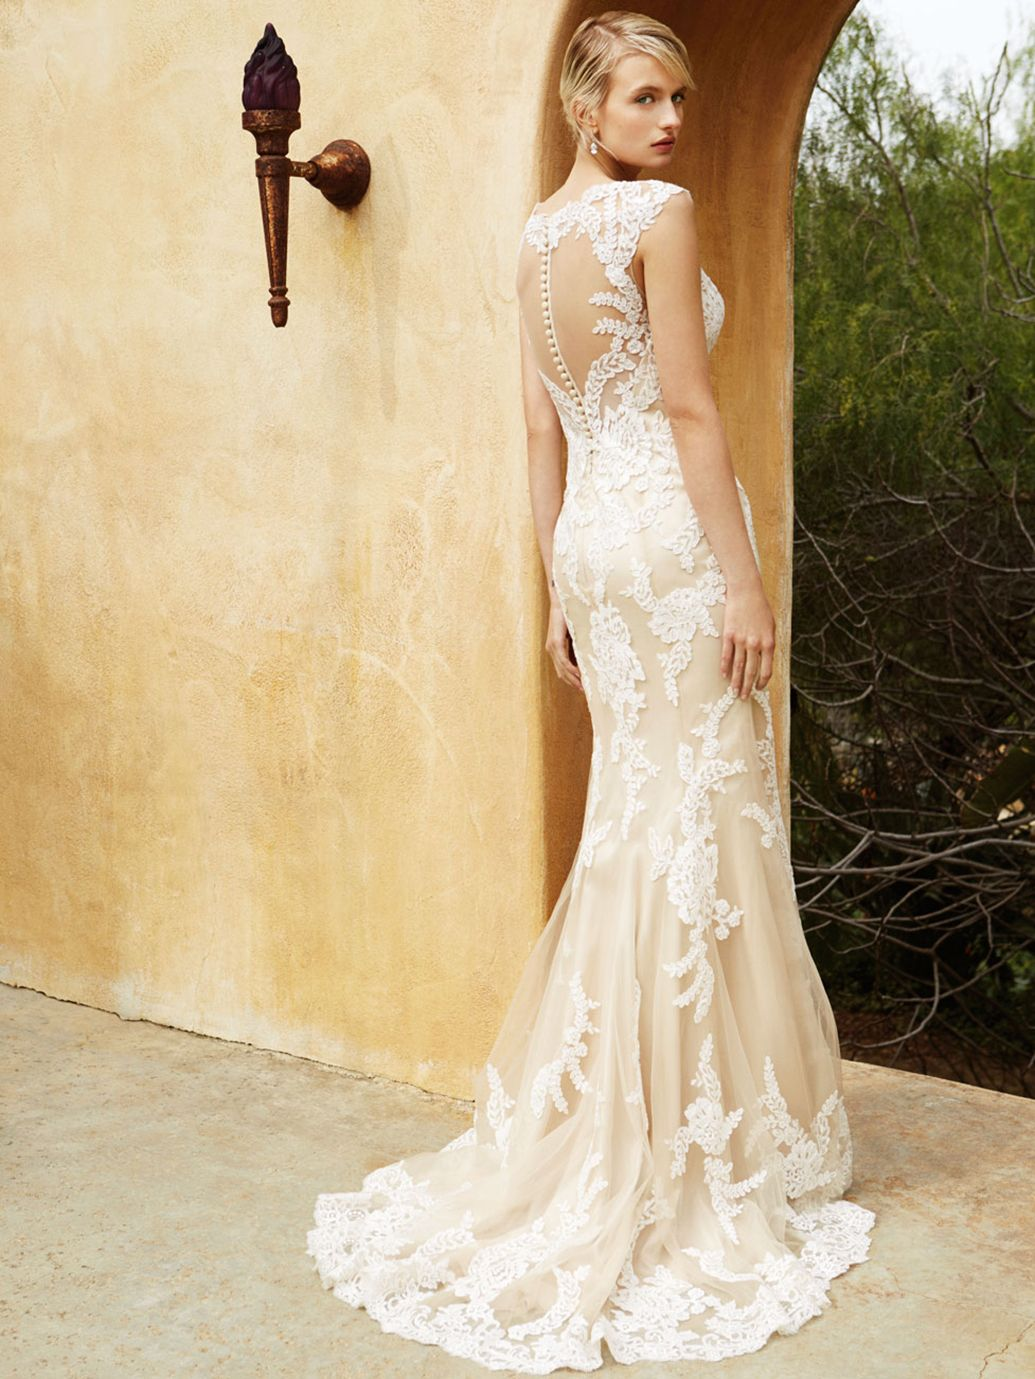 New at Uptown Bridal! Uptown Bridal & Boutique www.uptownbrides.com ...